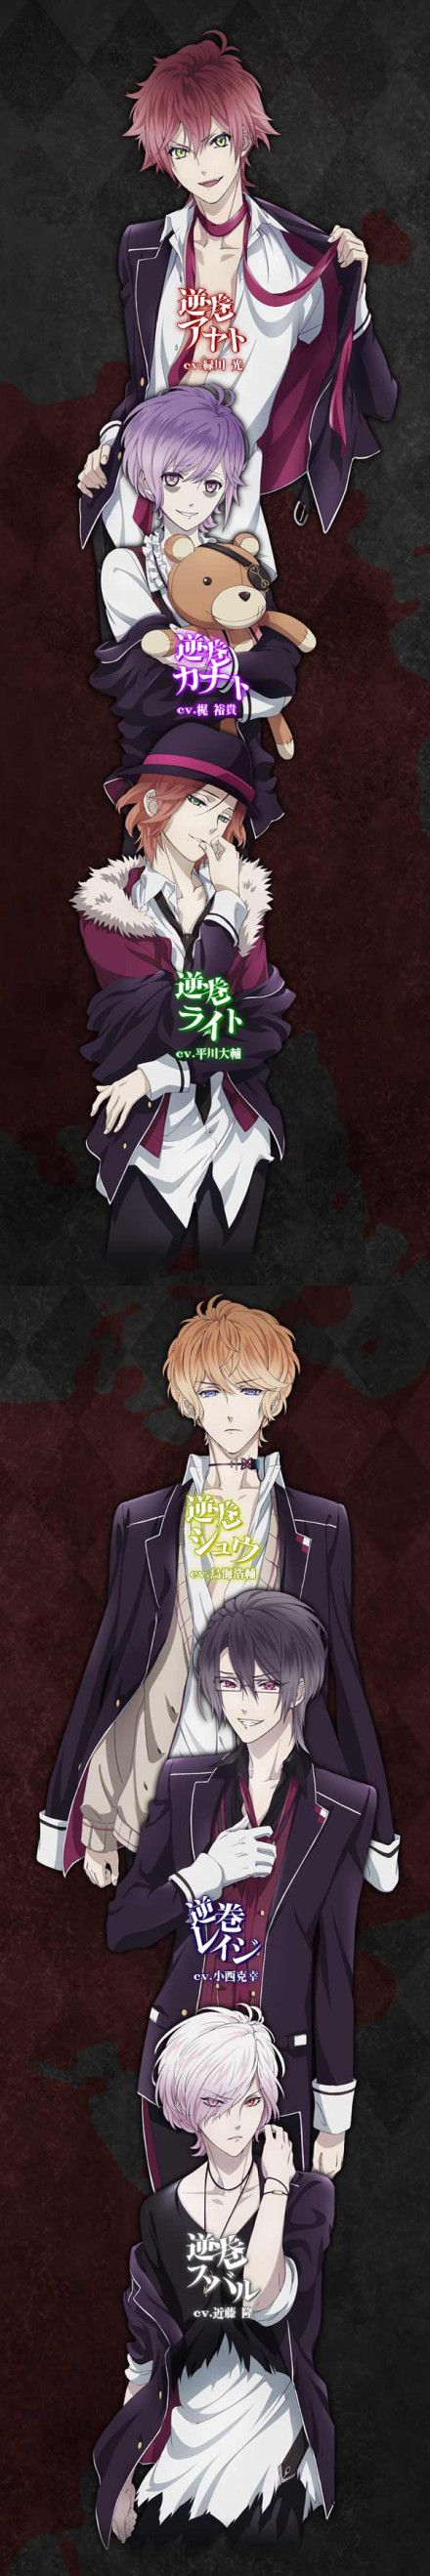 Diabolik Lovers... i don't get why Reiji is smiling... he should be making a serious/condescending face.